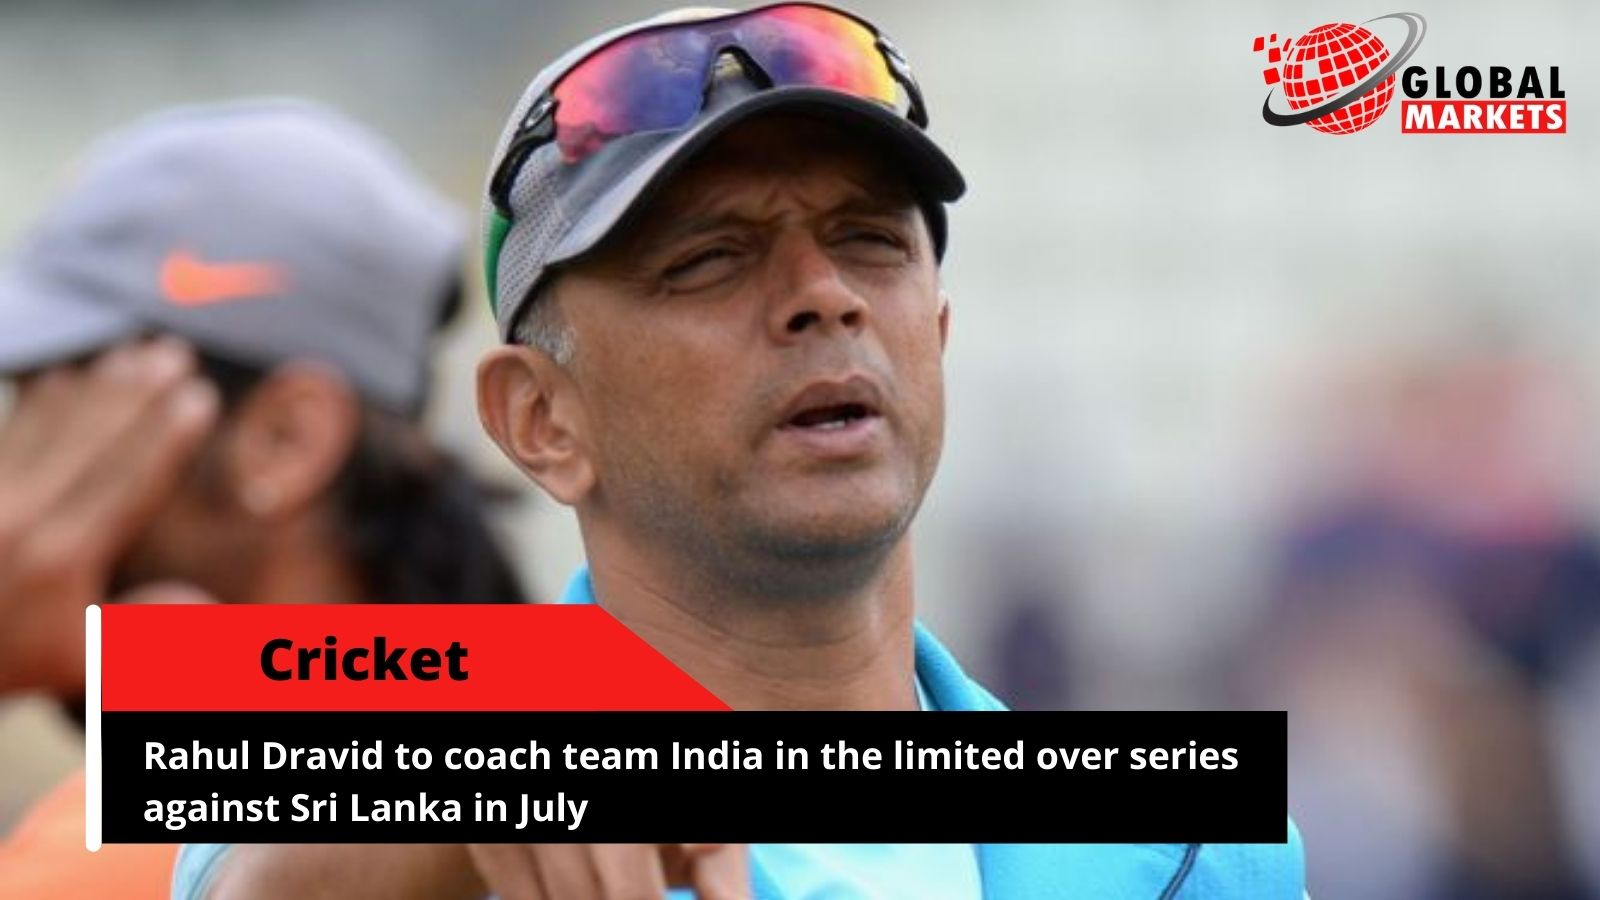 Rahul Dravid to coach team India in the limited over series against Sri Lanka in July